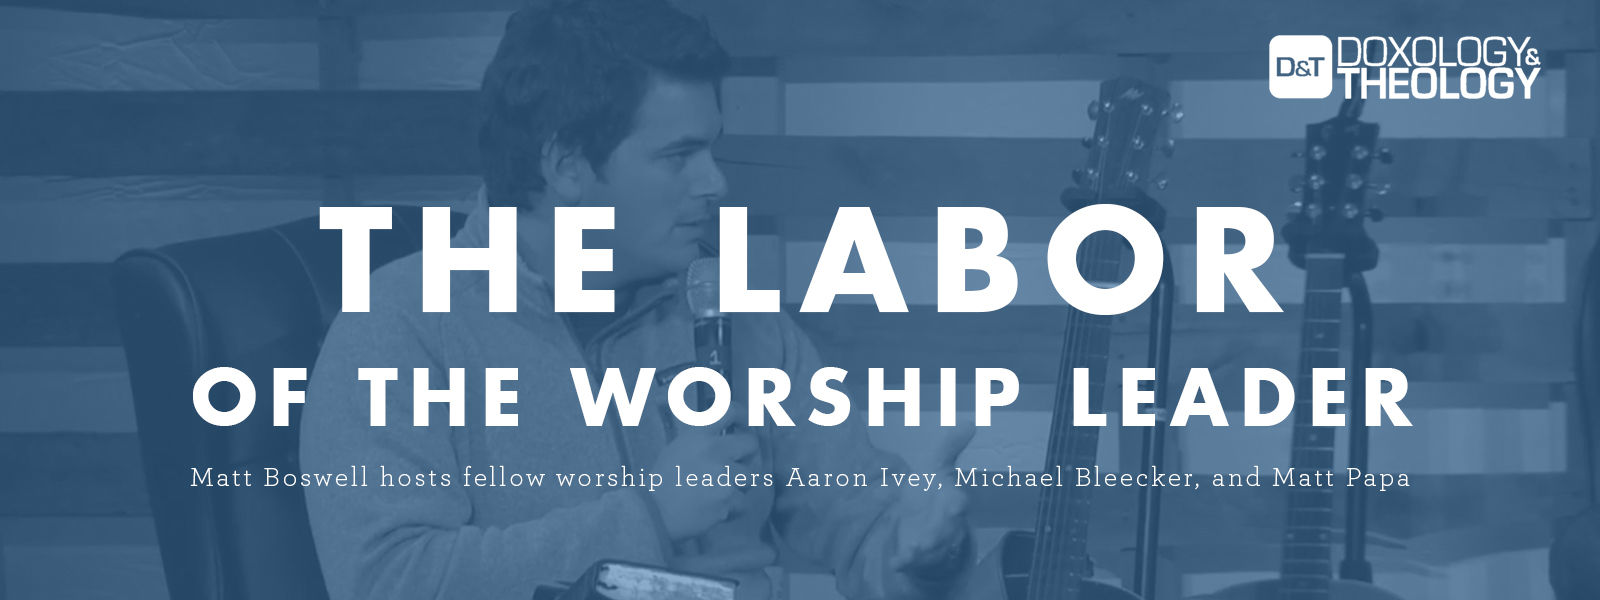 The Labor of the Worship Leader